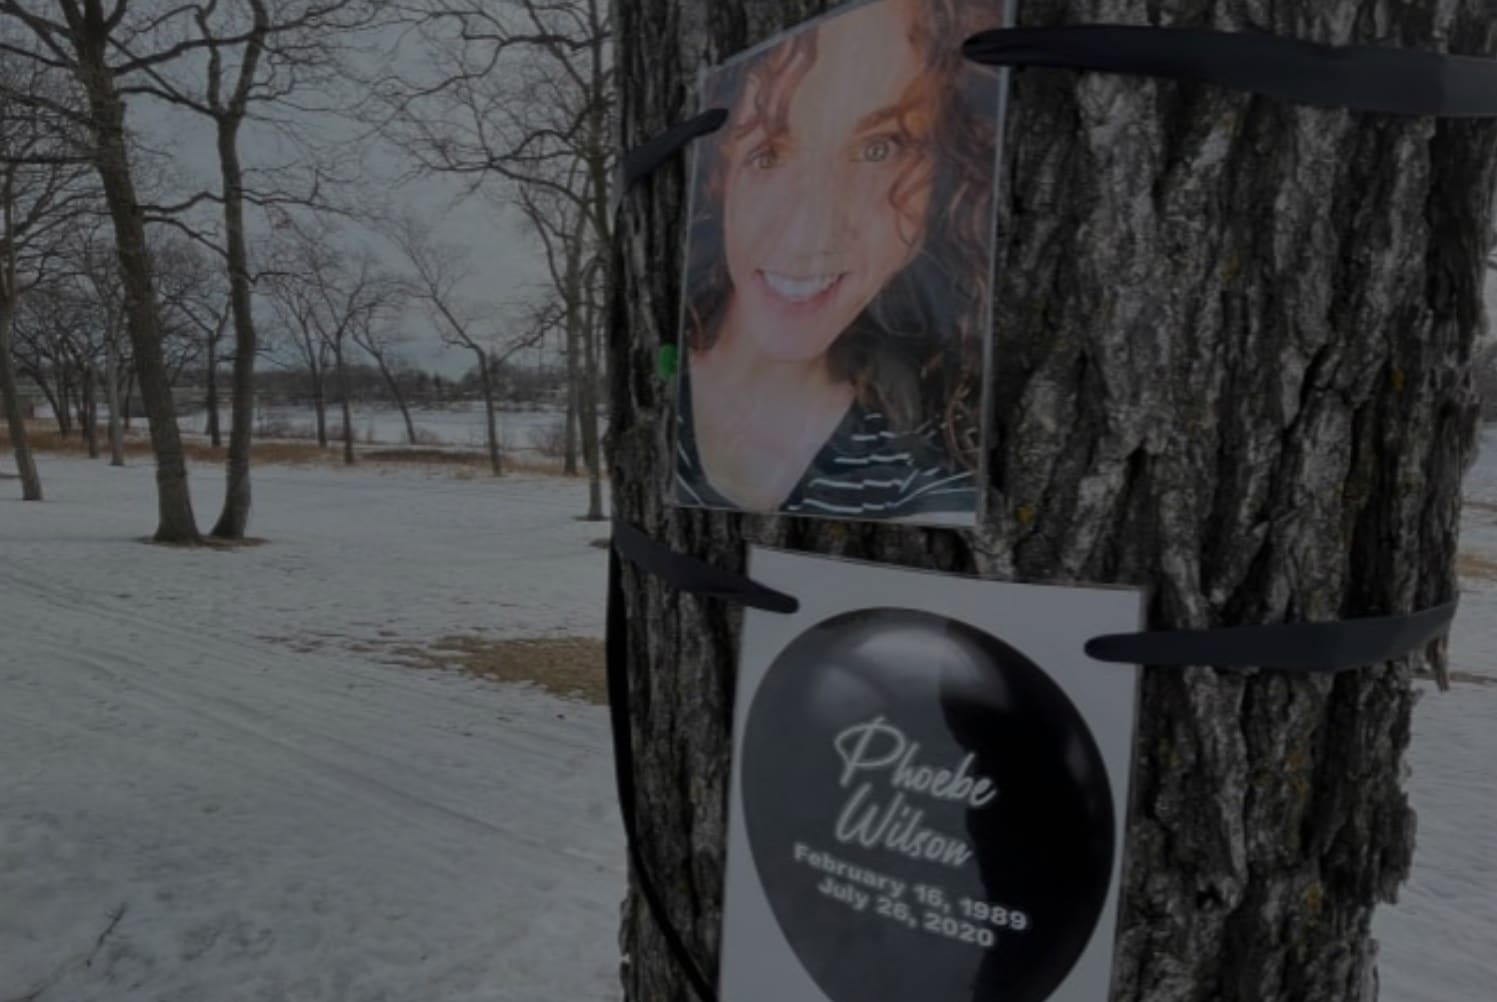 Image of an overdose victim on a tree